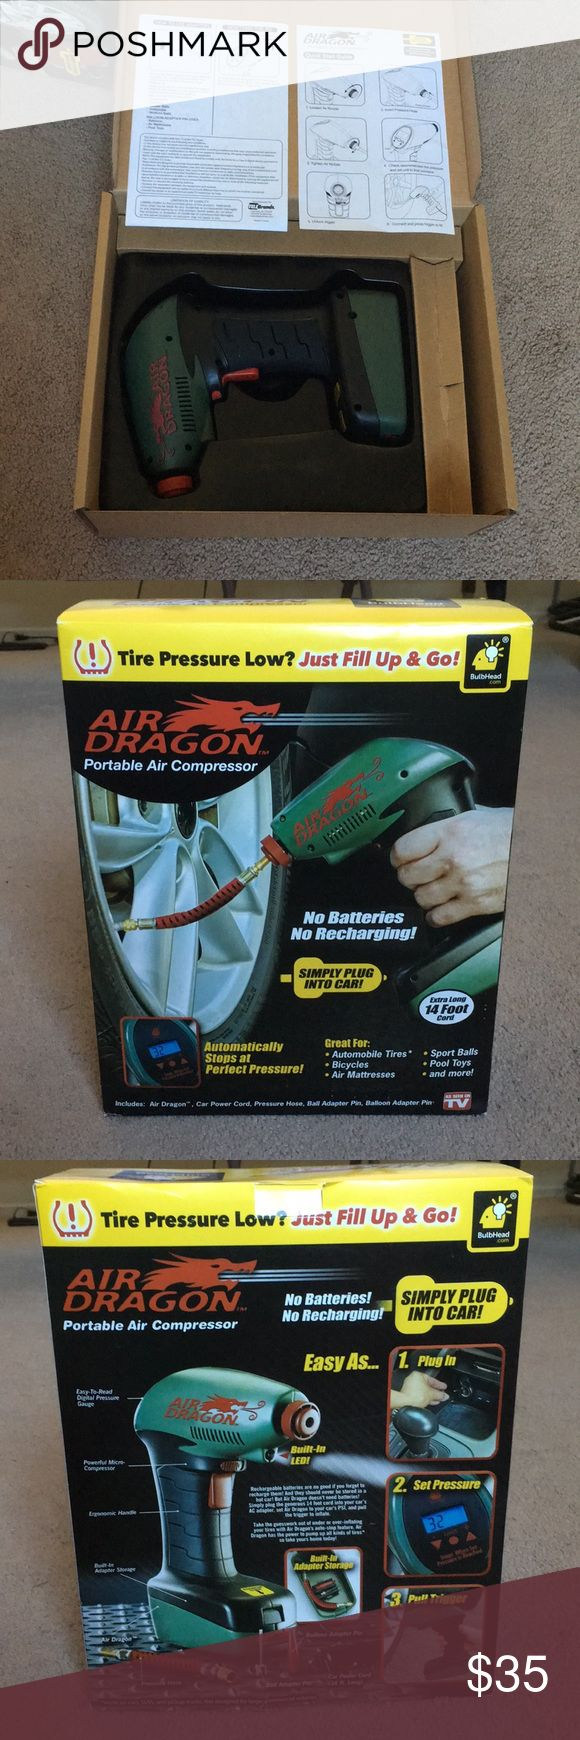 Portable Air Compressor – Great For: Automobile Tires, Bicycles, Air Mattresses,…